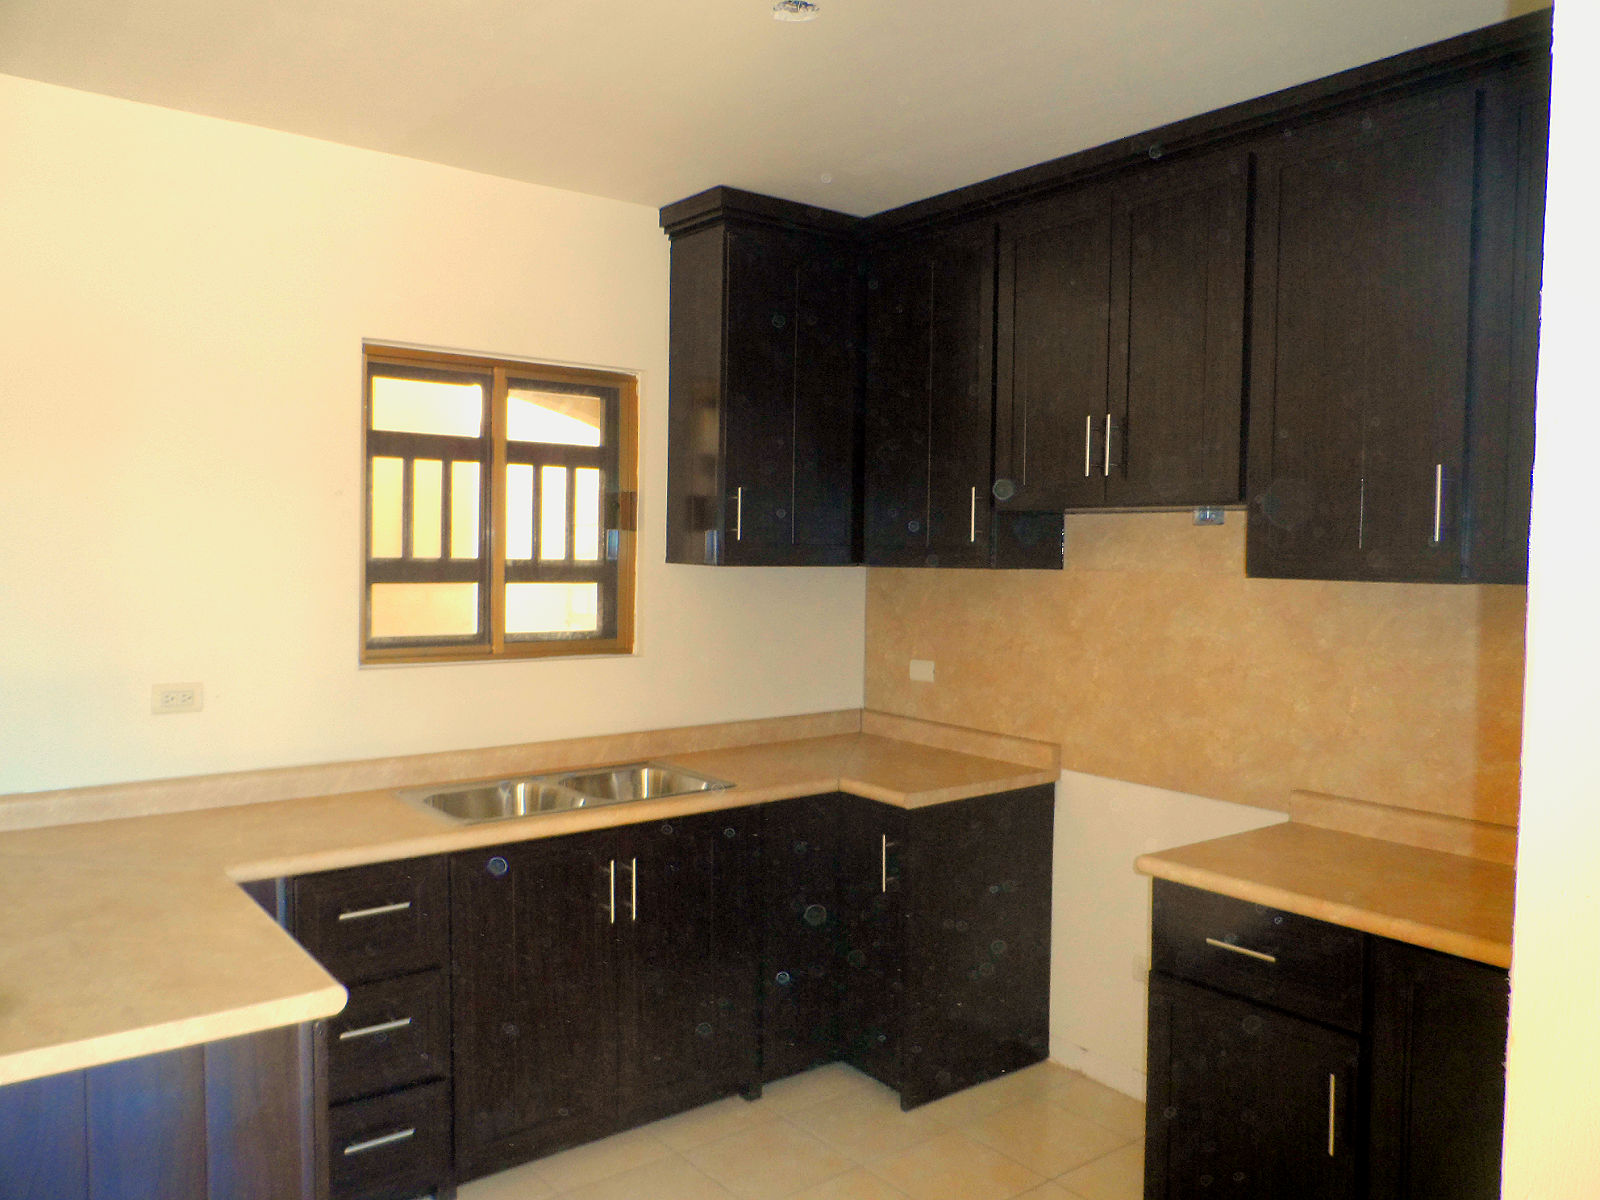 Plastic Kitchen Cabinets Ridid Plastic Kitchen Cabinets Rigid Plastic